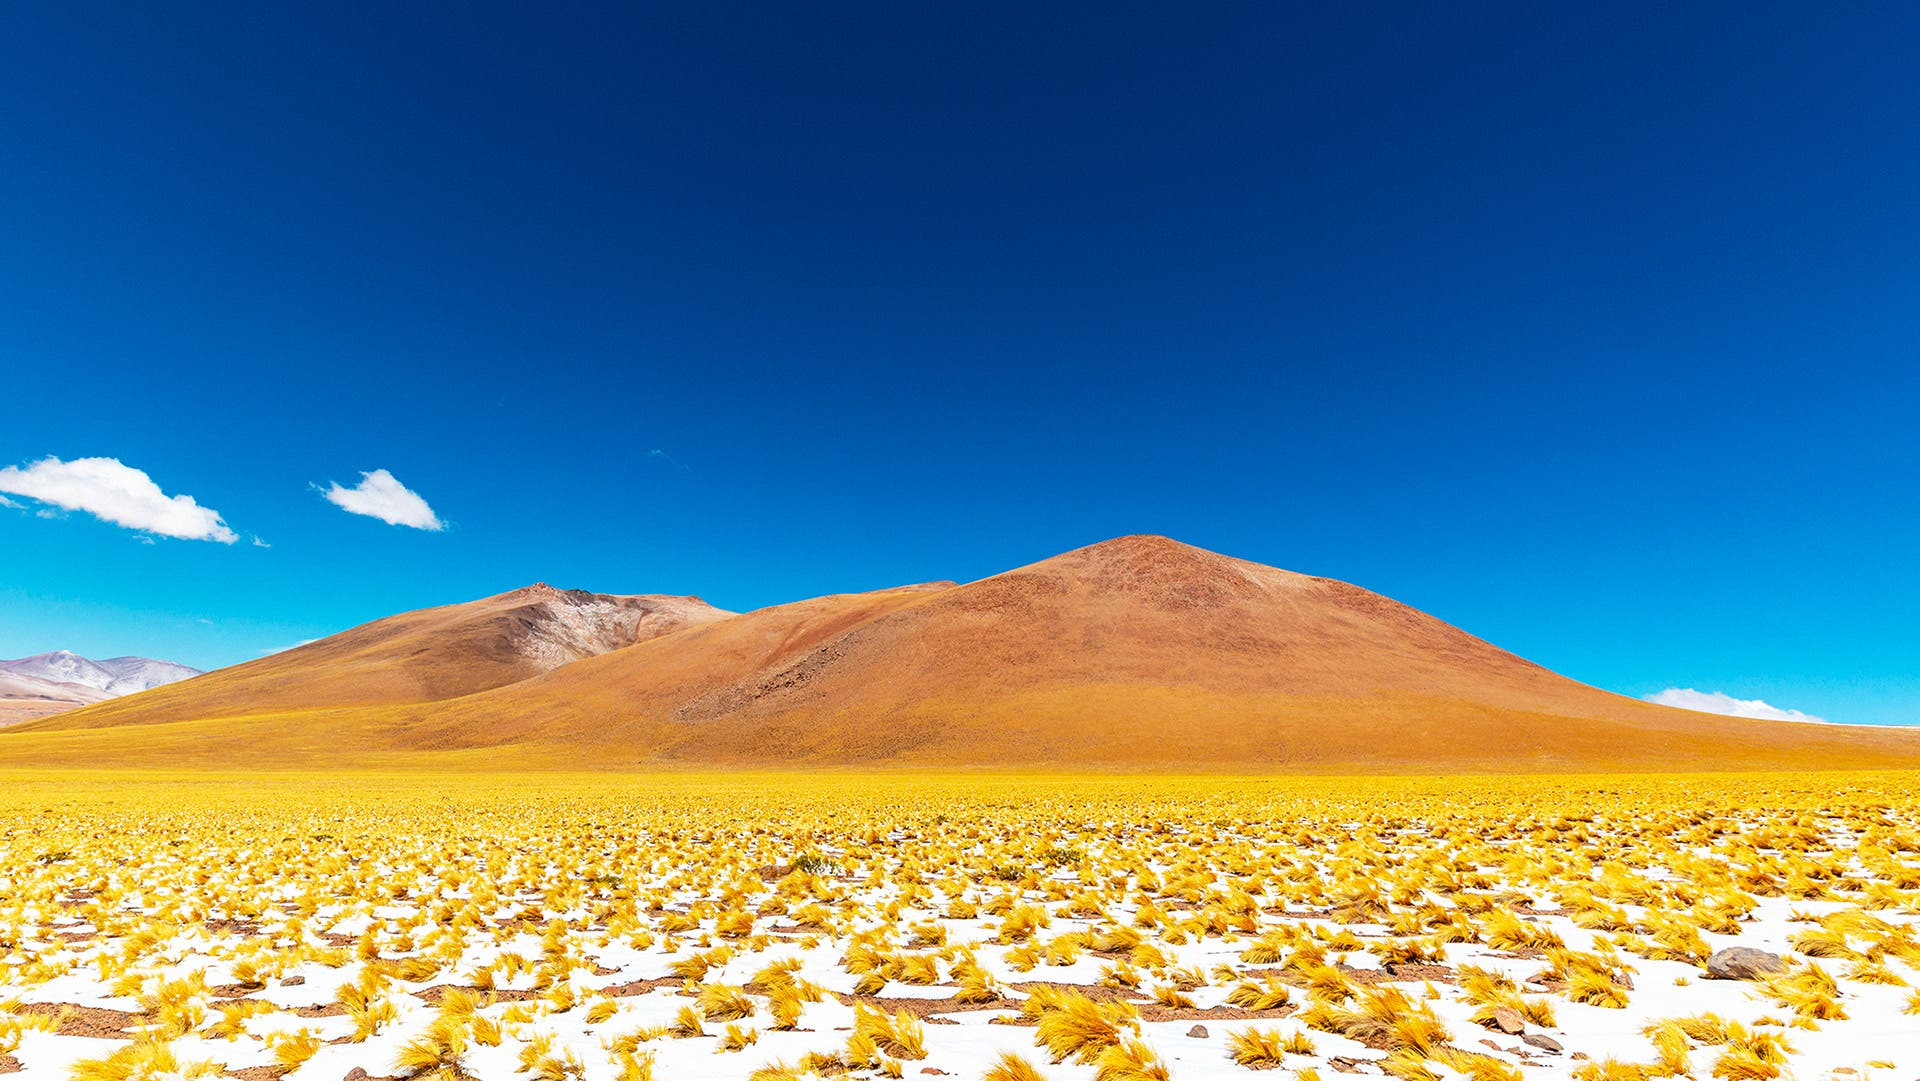 Felipe Ballin Shares the Colorful Spectacle of the Atacama Landscapes